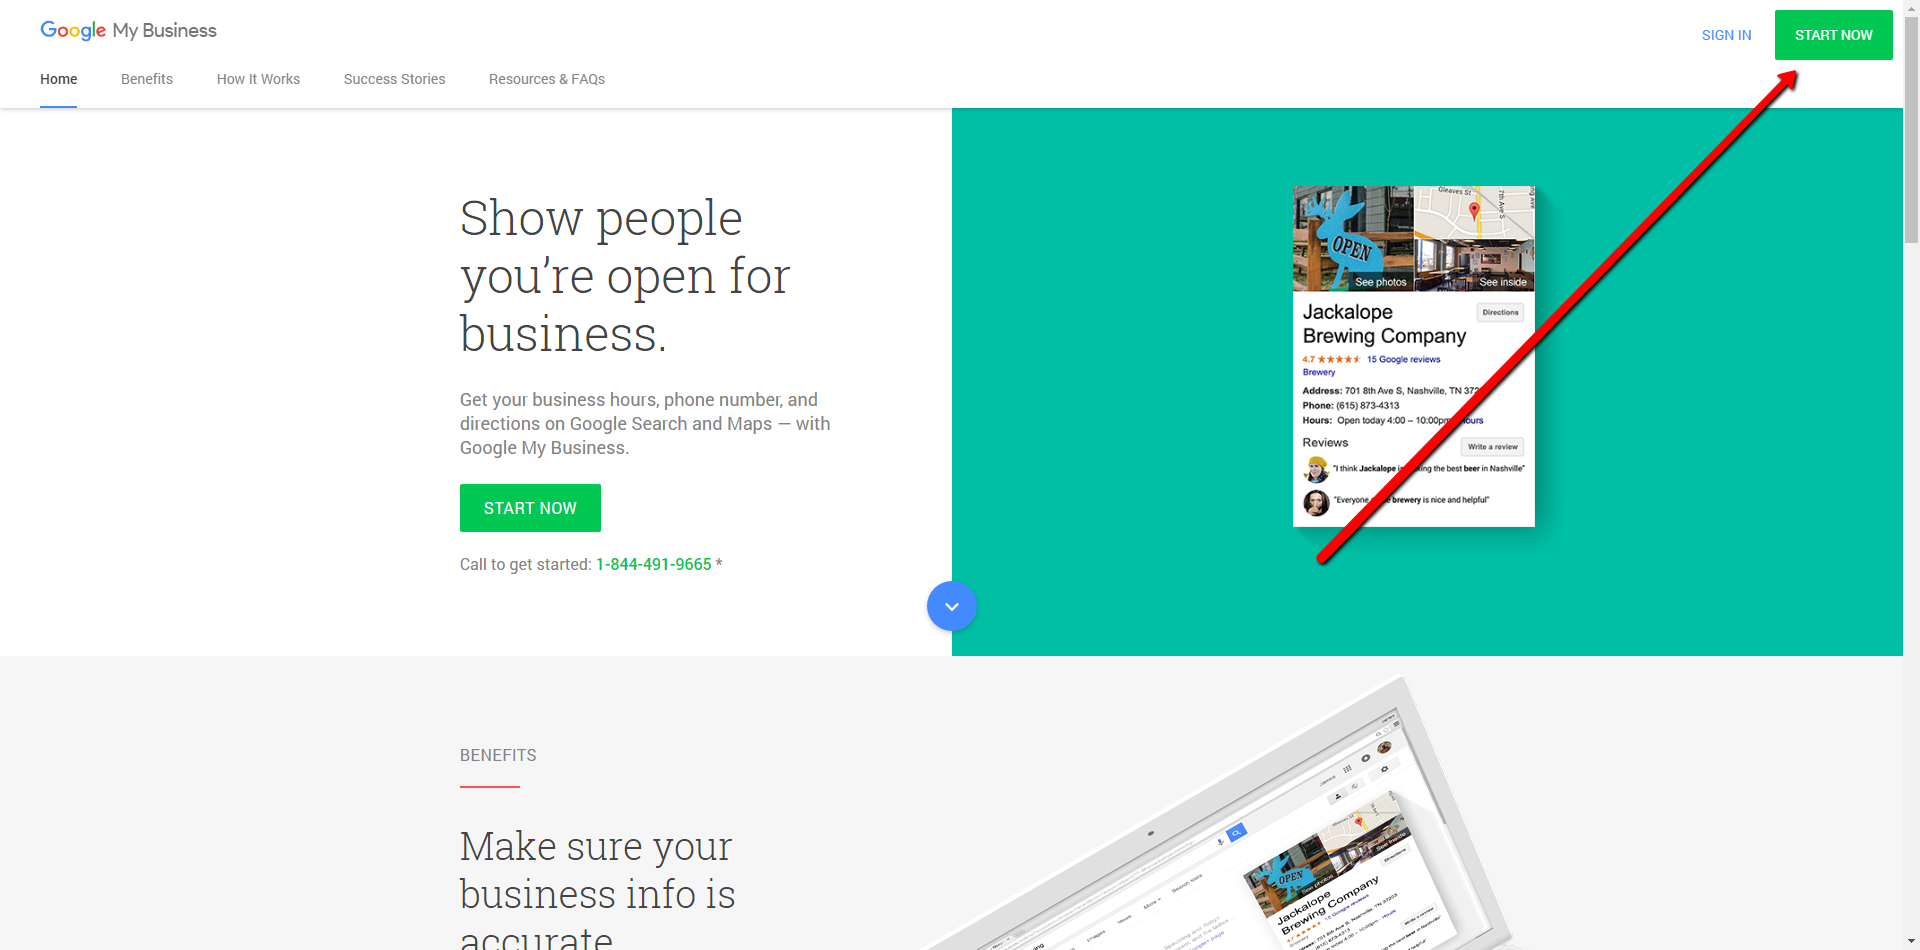 navigate to the Google My Business home page